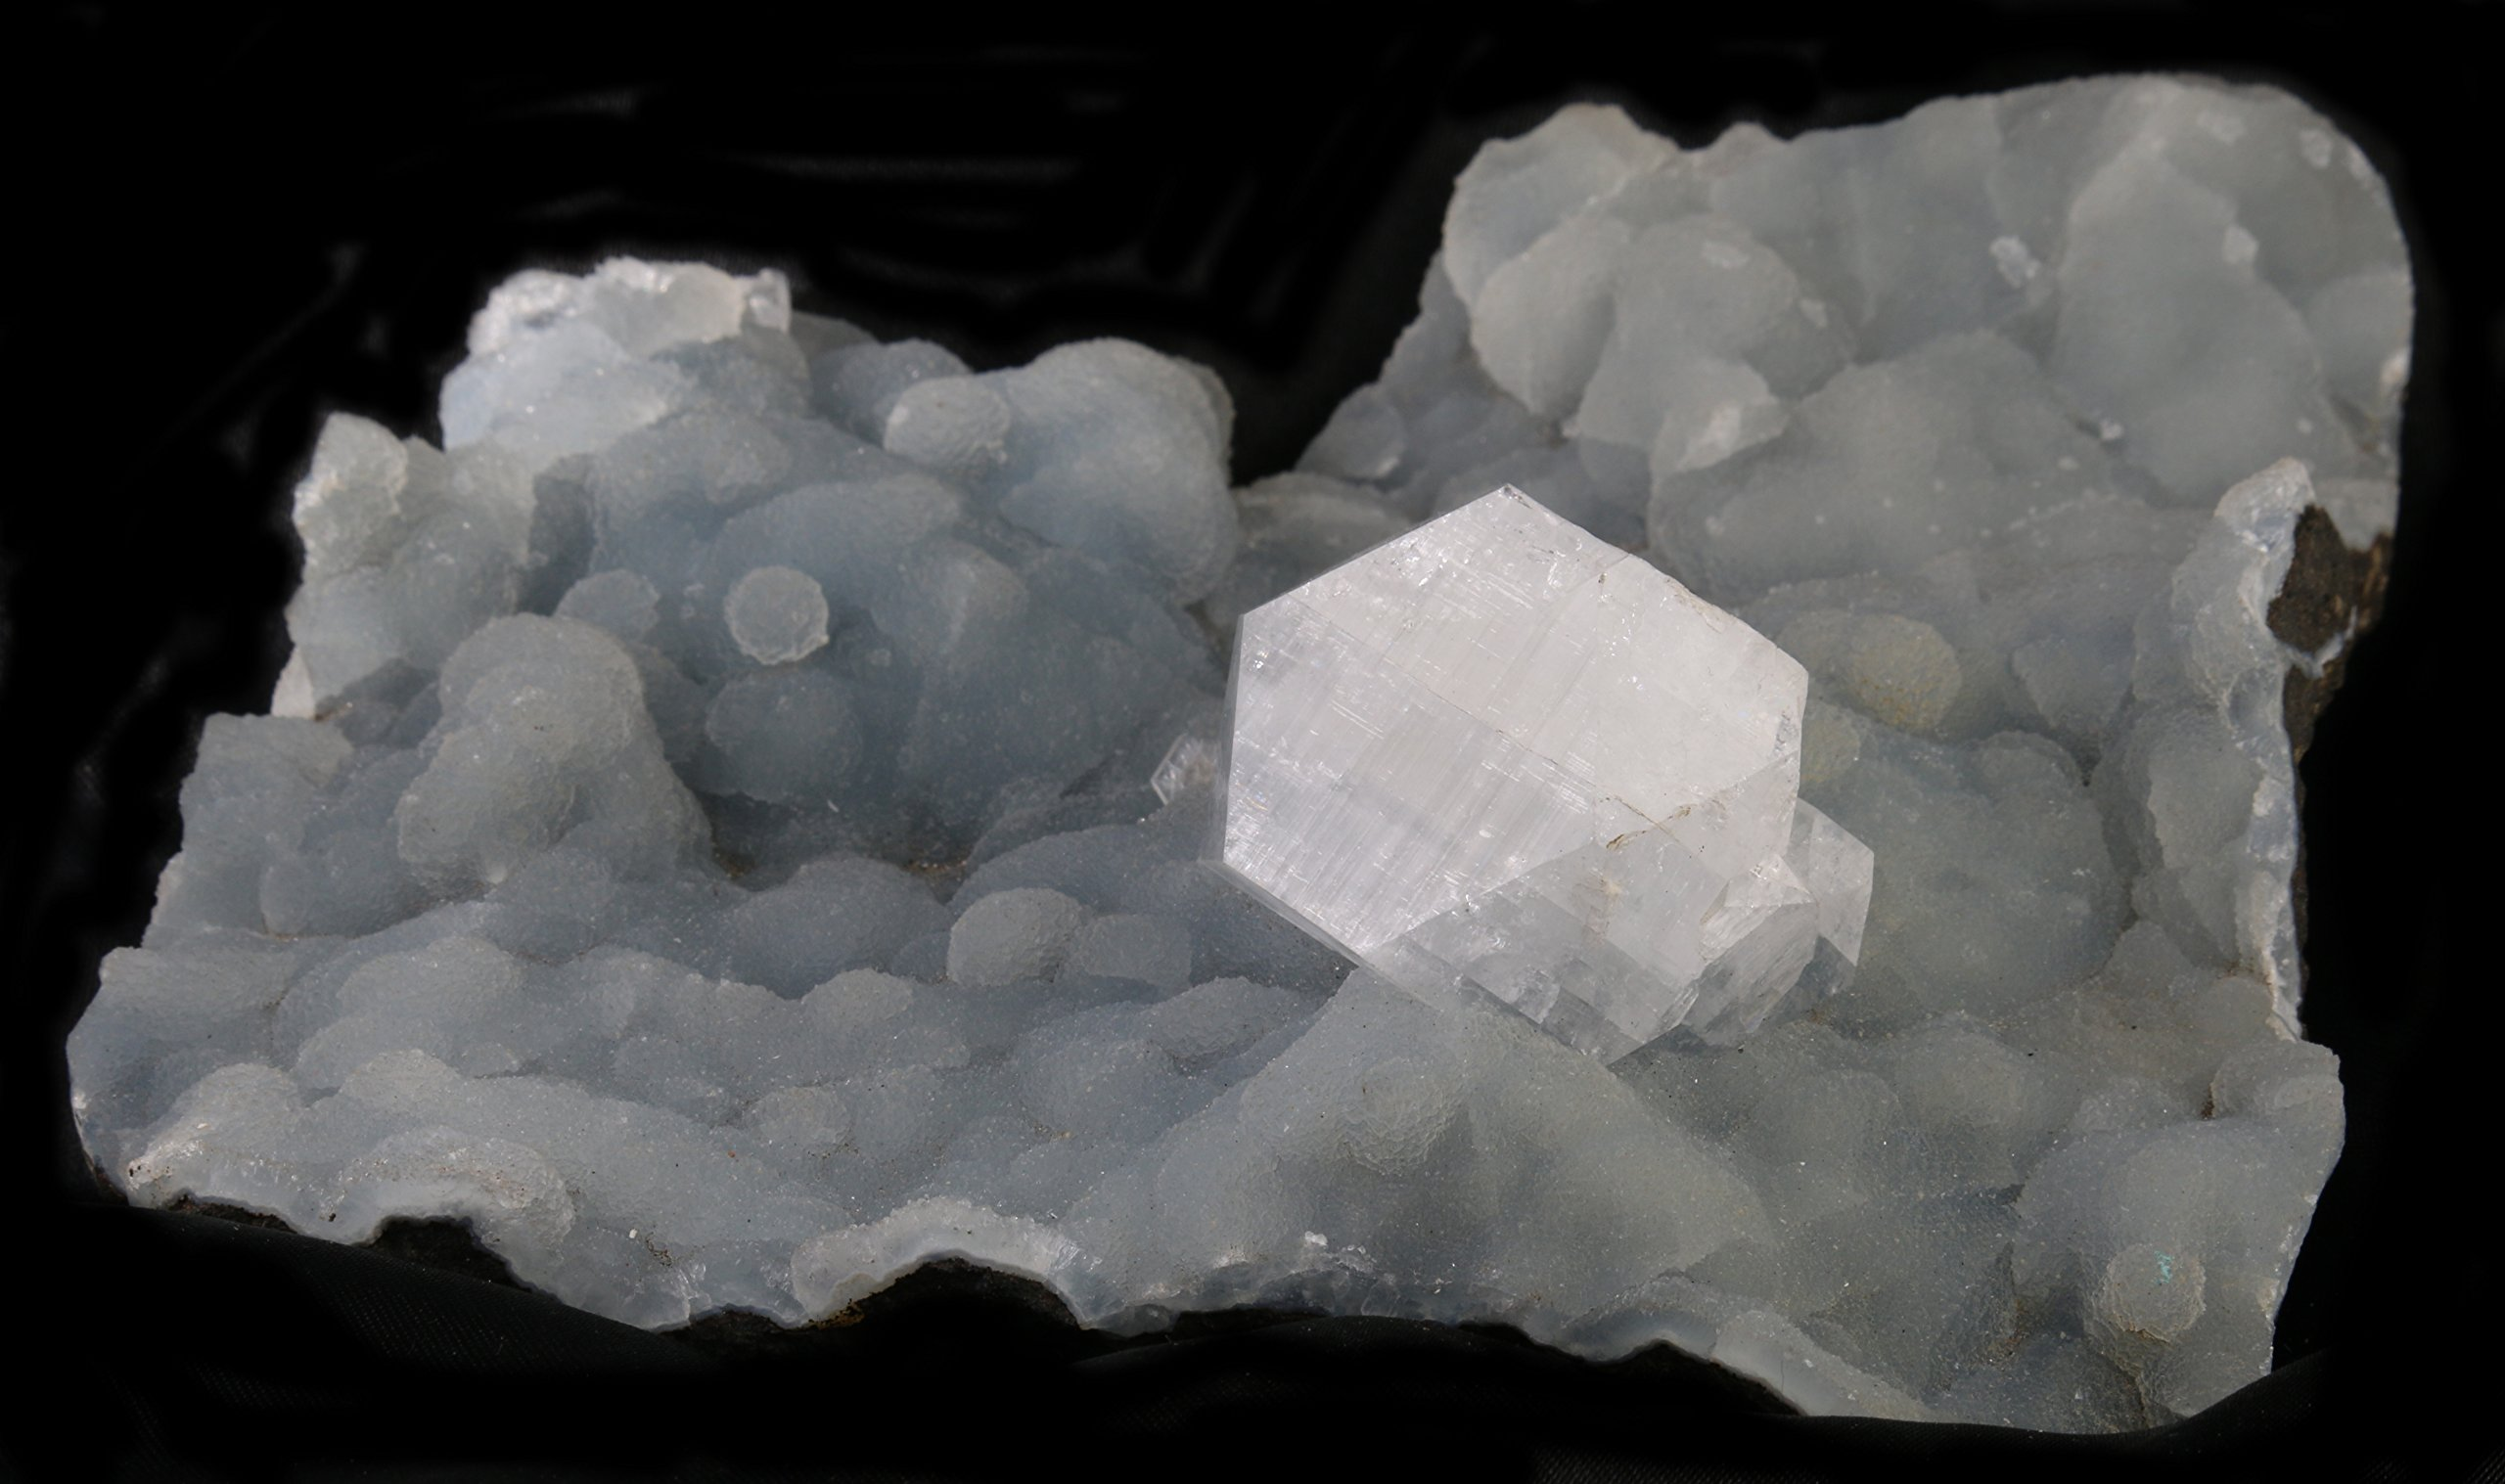 Healing Crystals Love, Apophyllite over Coral, Feng Shui Crystals and Healing Stones Log for Feng Shui Crystal Healing, Reiki, Healing Crystals and Stones 999 by Healing Crystals Love (Image #2)